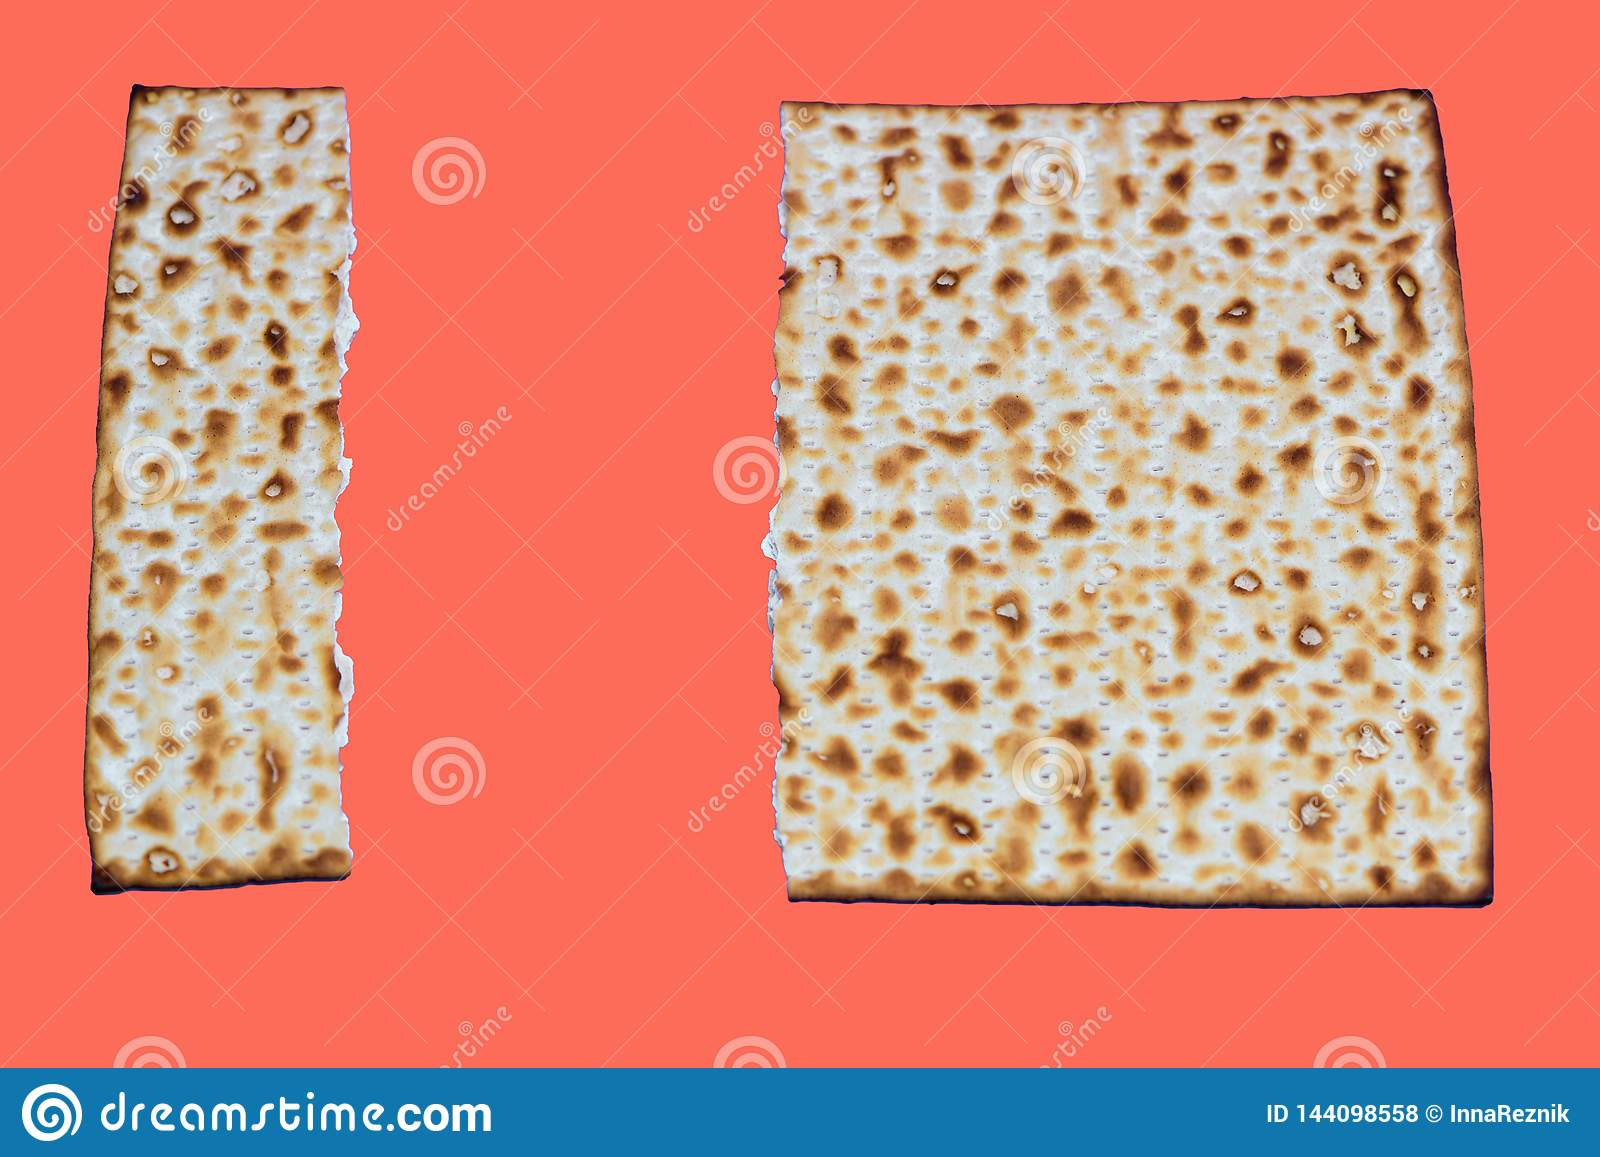 Living Coral color of the Year 2019. Matza Pesach celebration symbol on trendy color background.